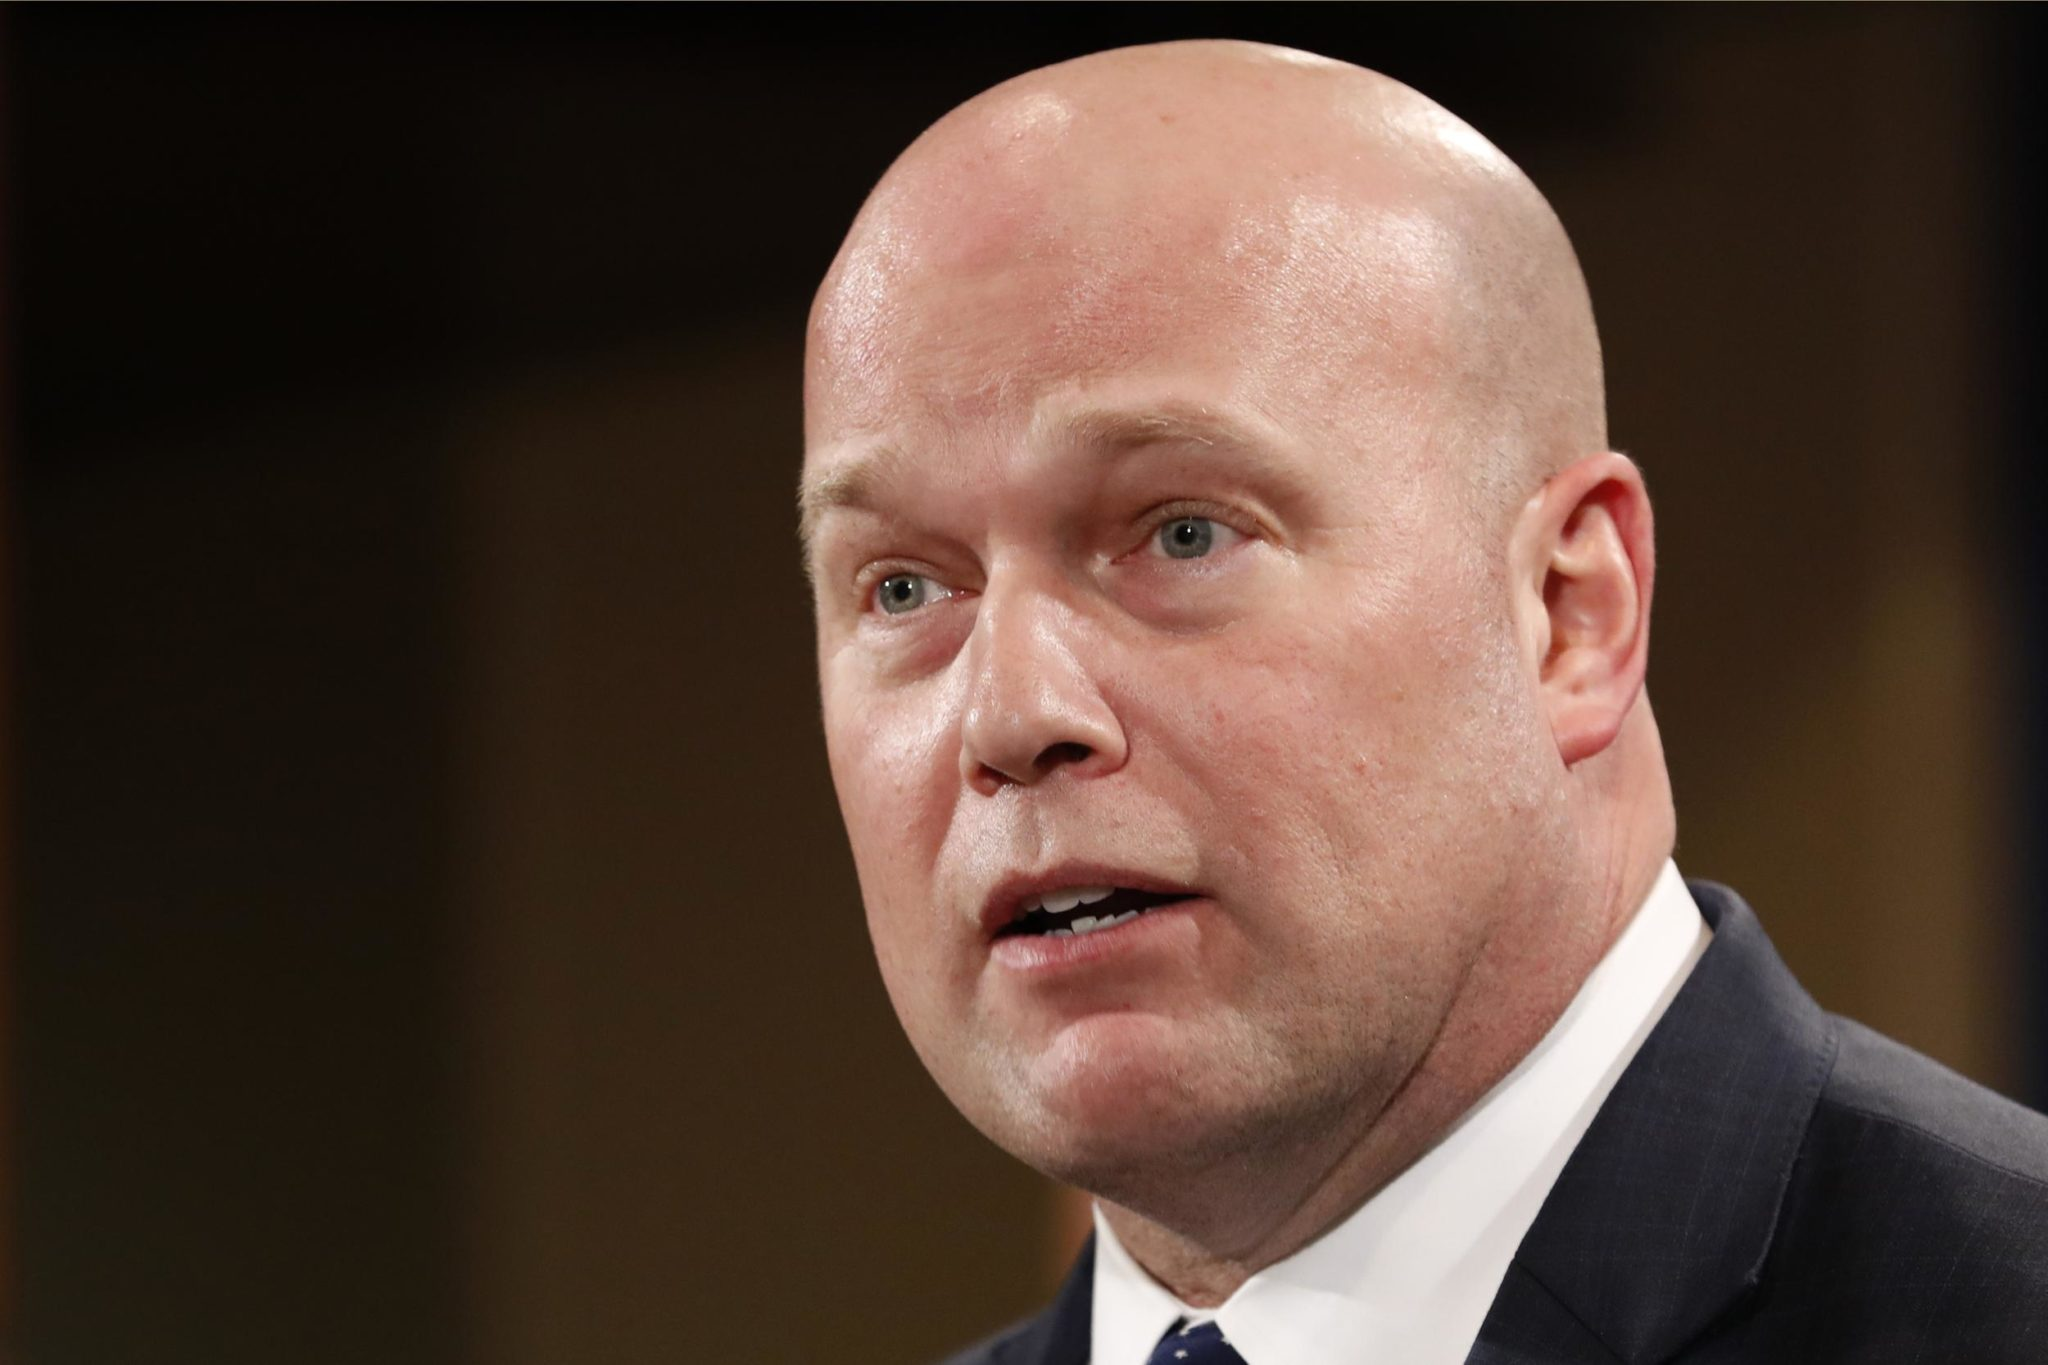 DOJ's Whitaker says Russia probe 'close' to being completed